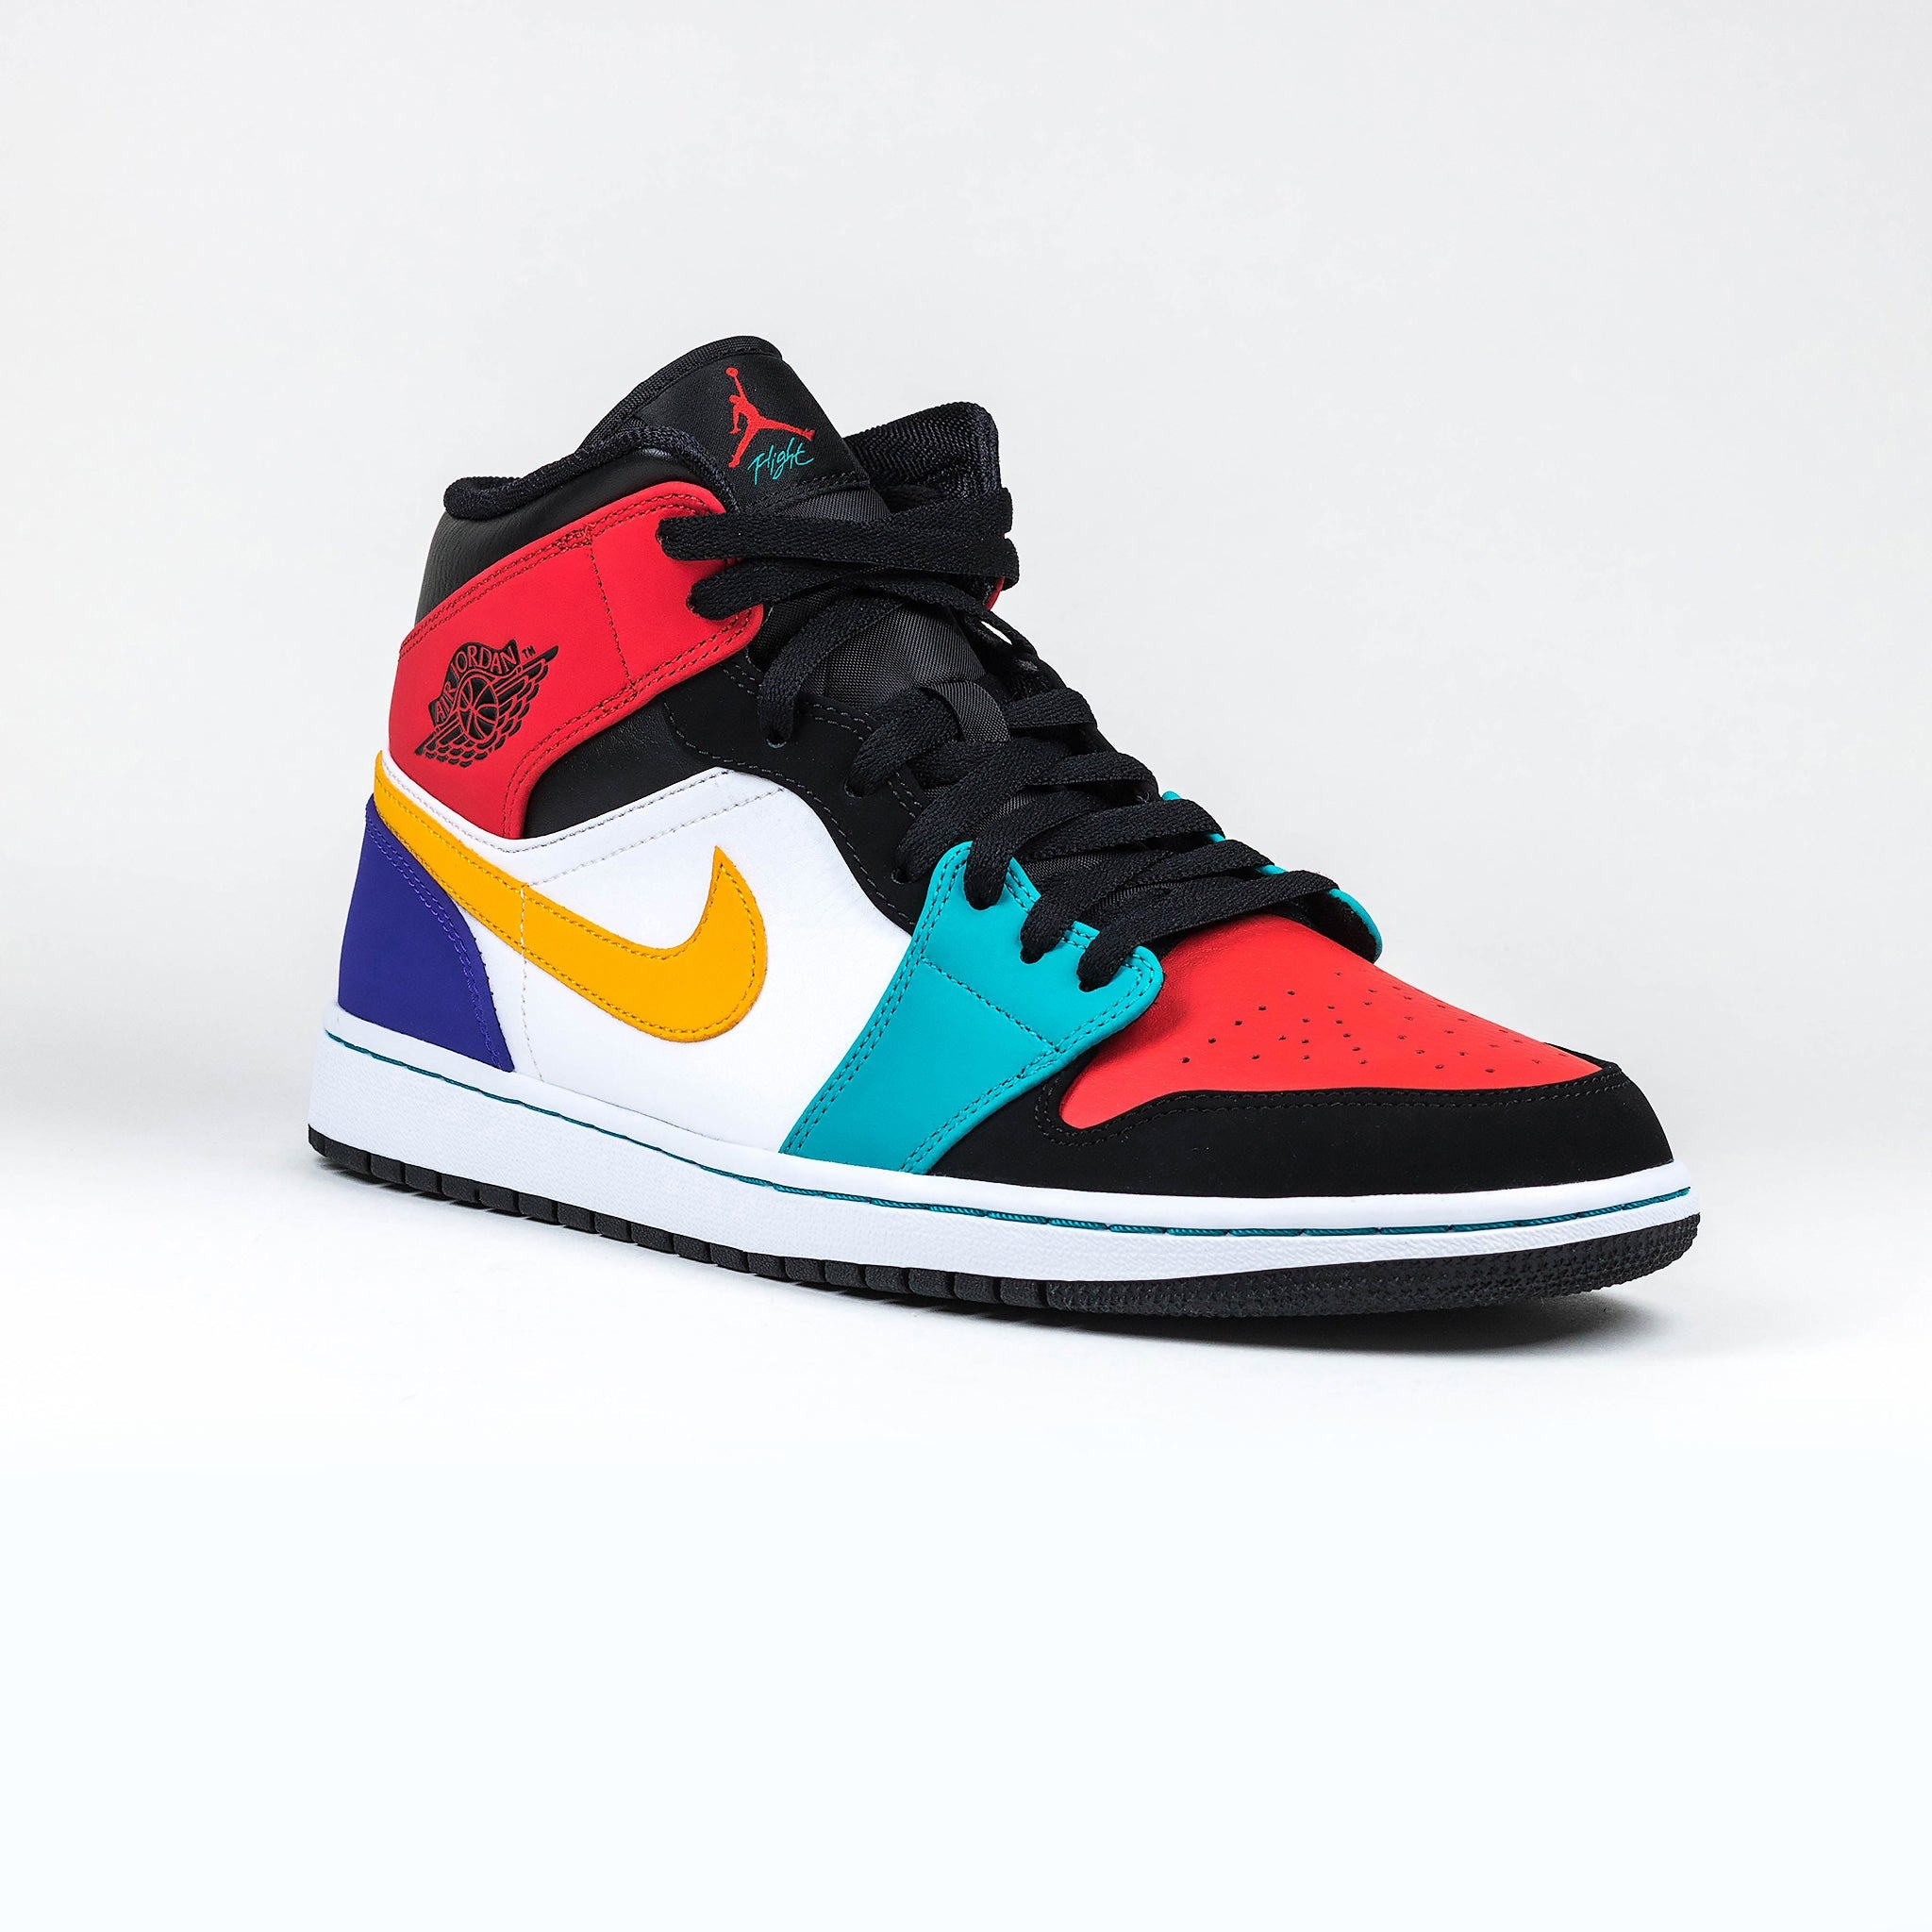 reputable site 7a5ec feefc Nike Air Jordan 1 Mid Bred Multi Color Sneaker – Crepslocker